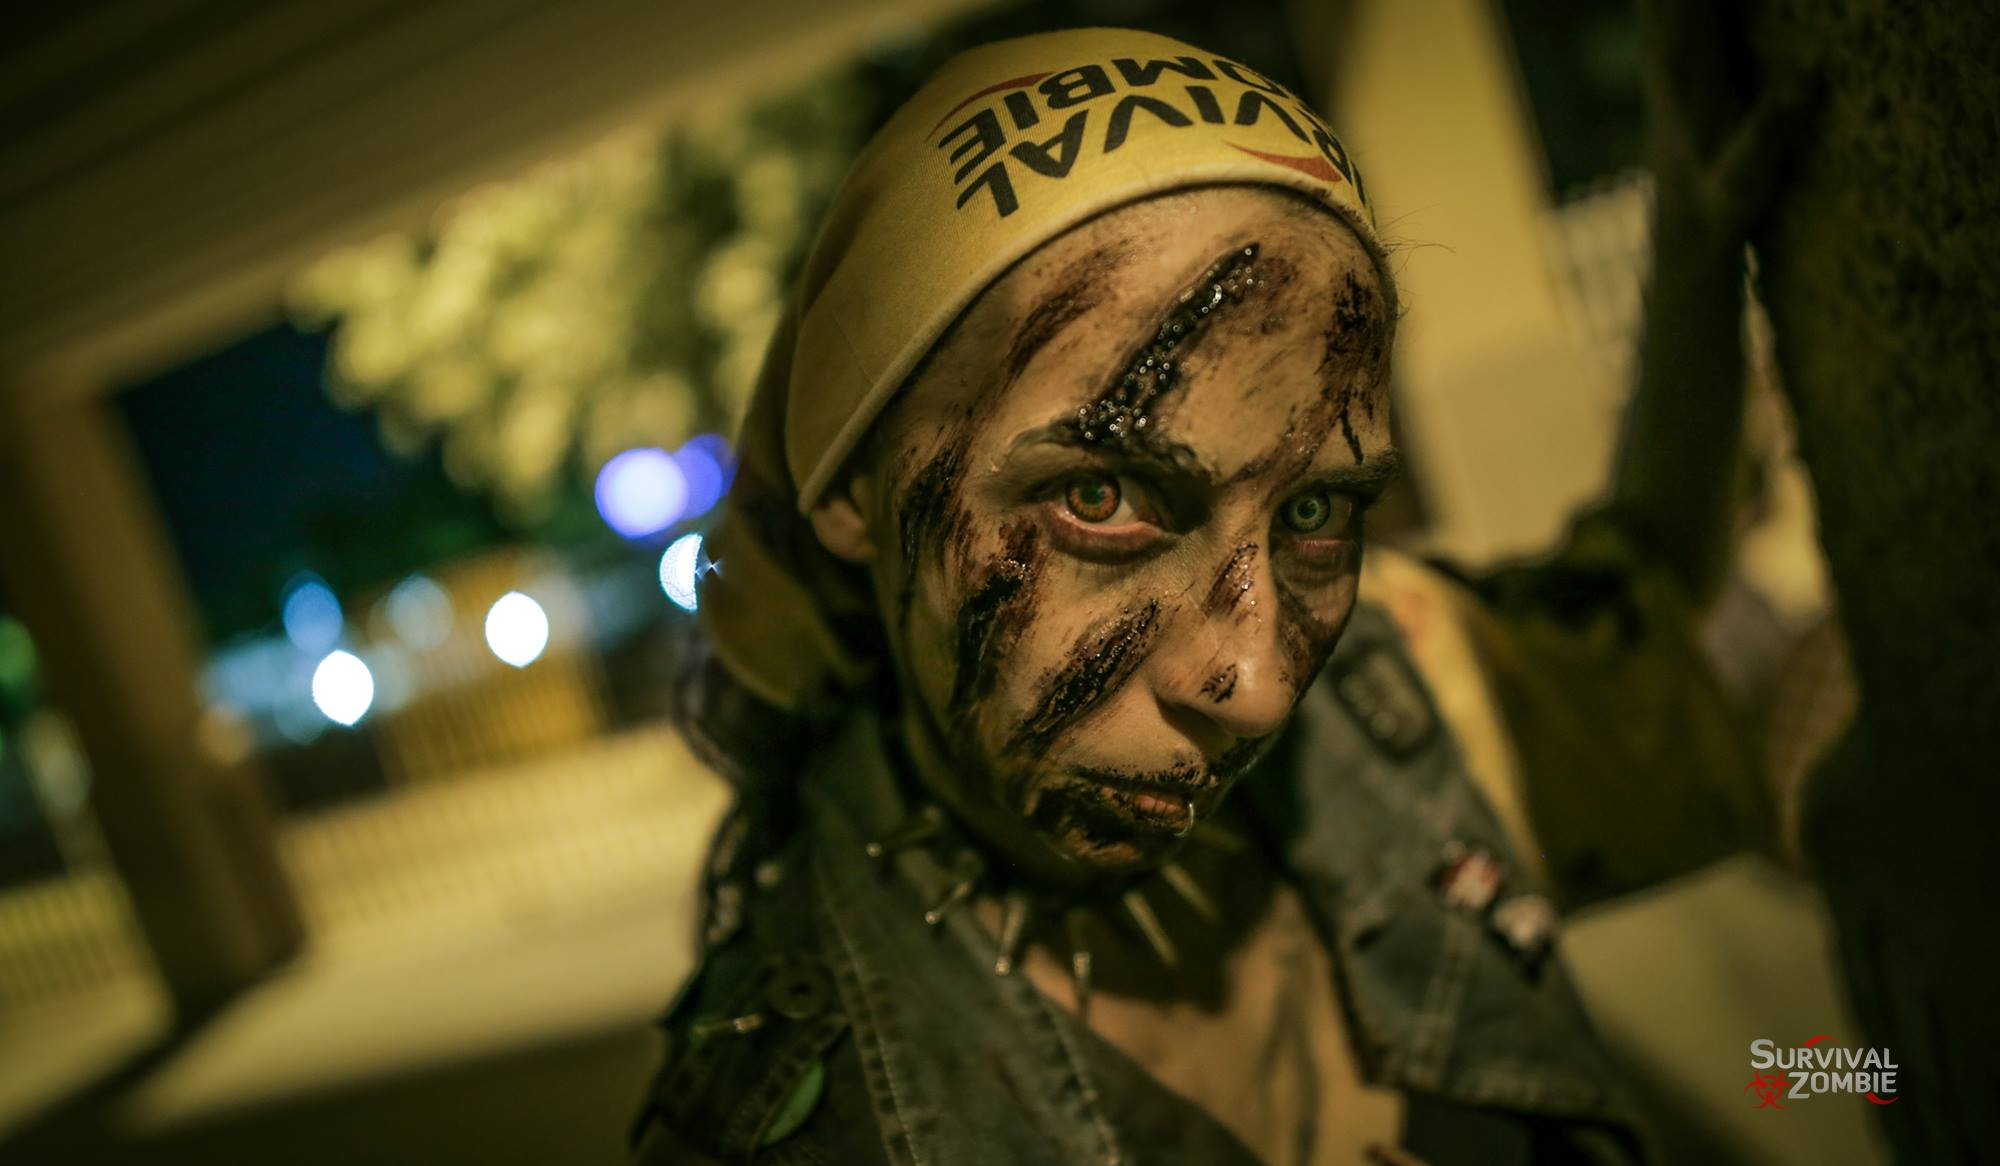 La Survival Zombie de World Real Games llega a Calamocha y Calatayud